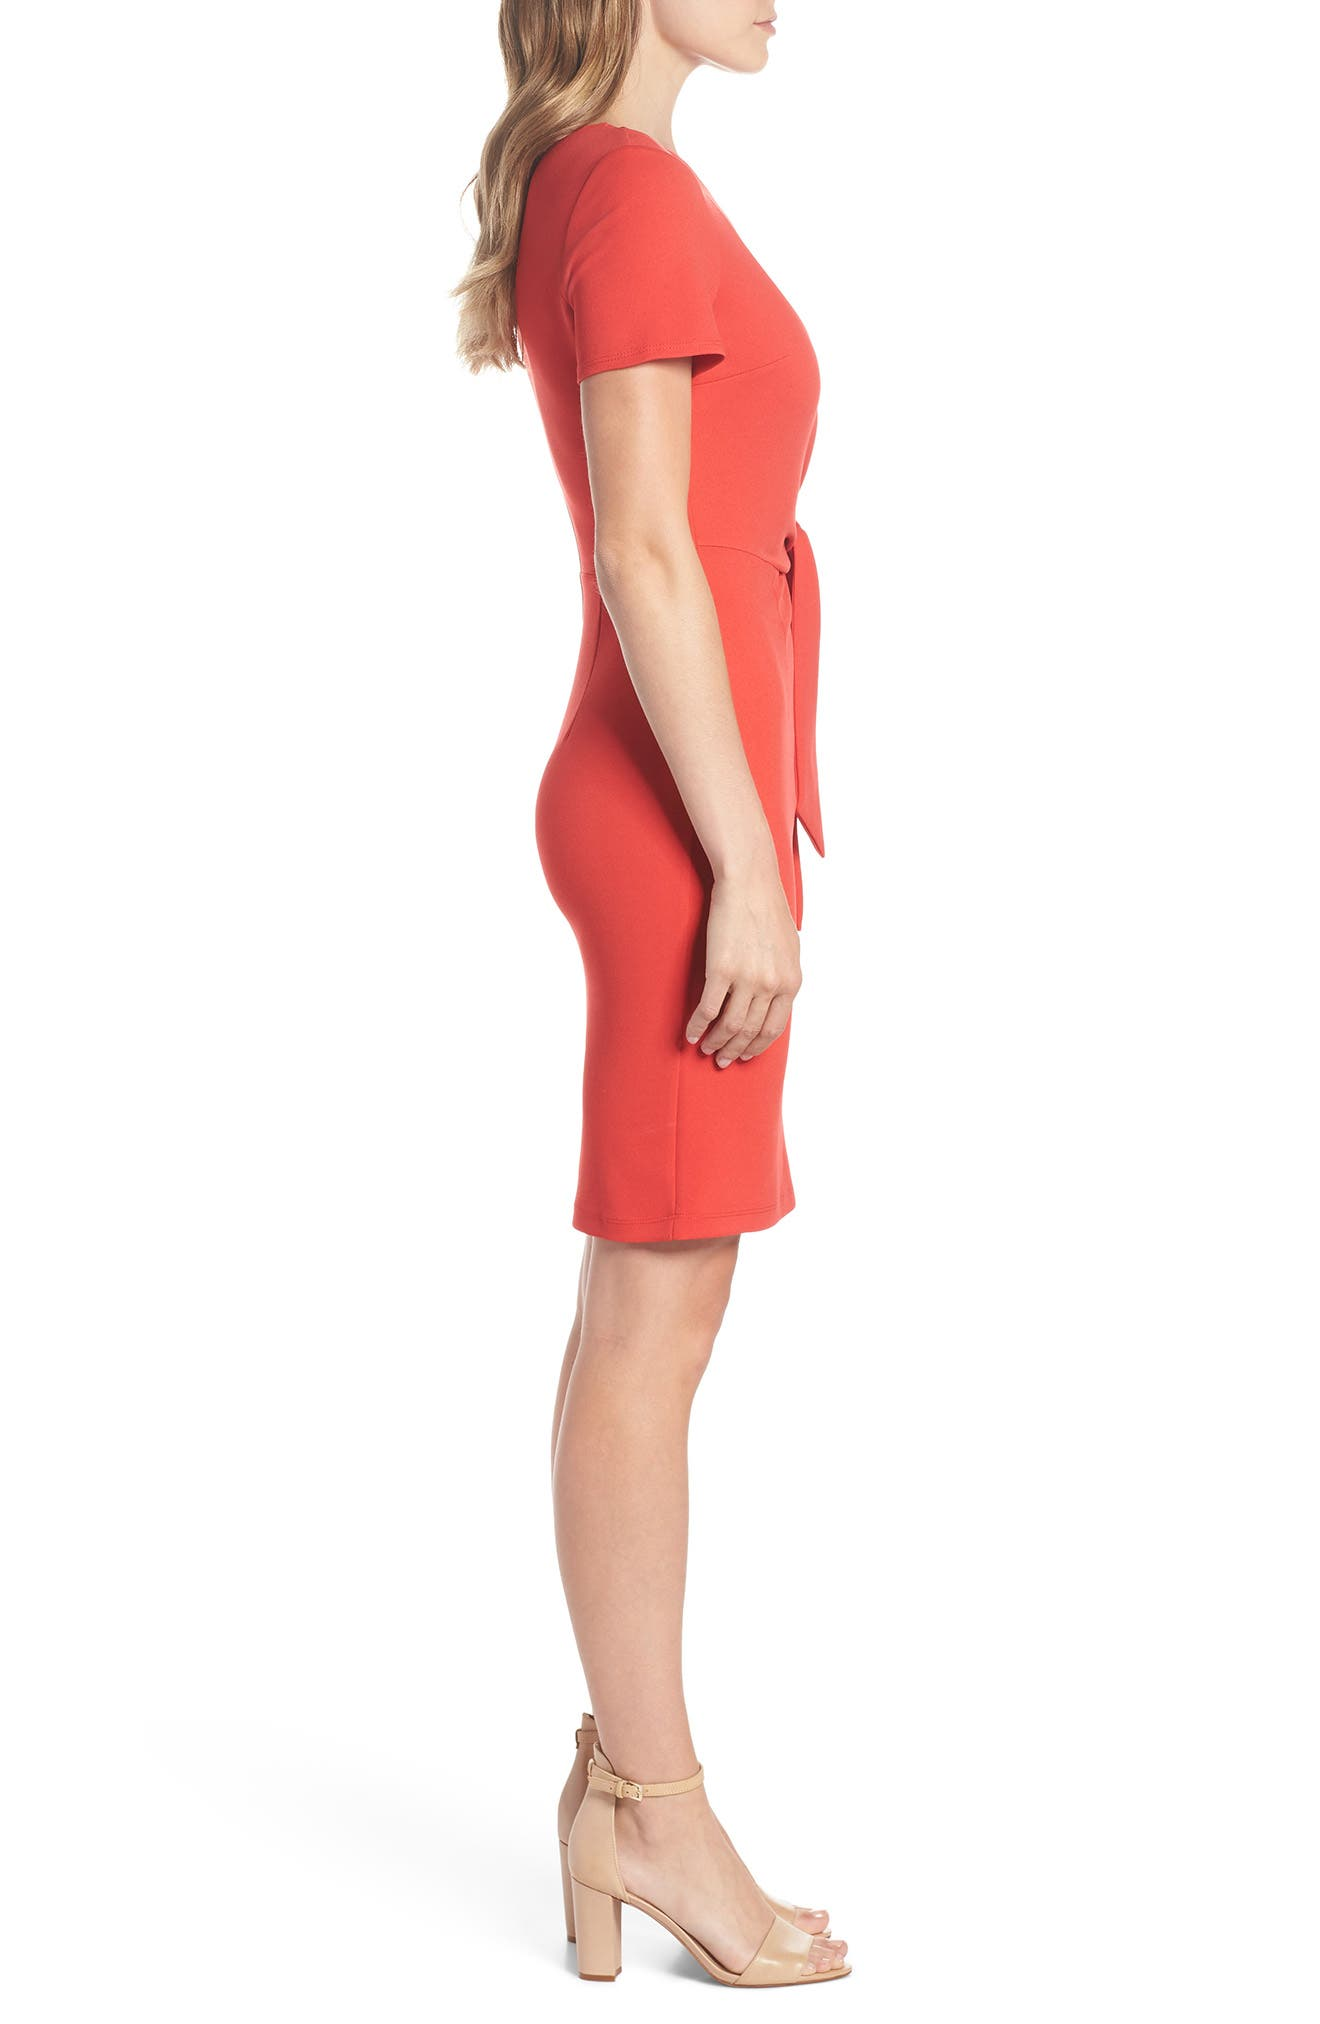 DOROTHY PERKINS,                             Tie Front Sheath Dress,                             Alternate thumbnail 3, color,                             650